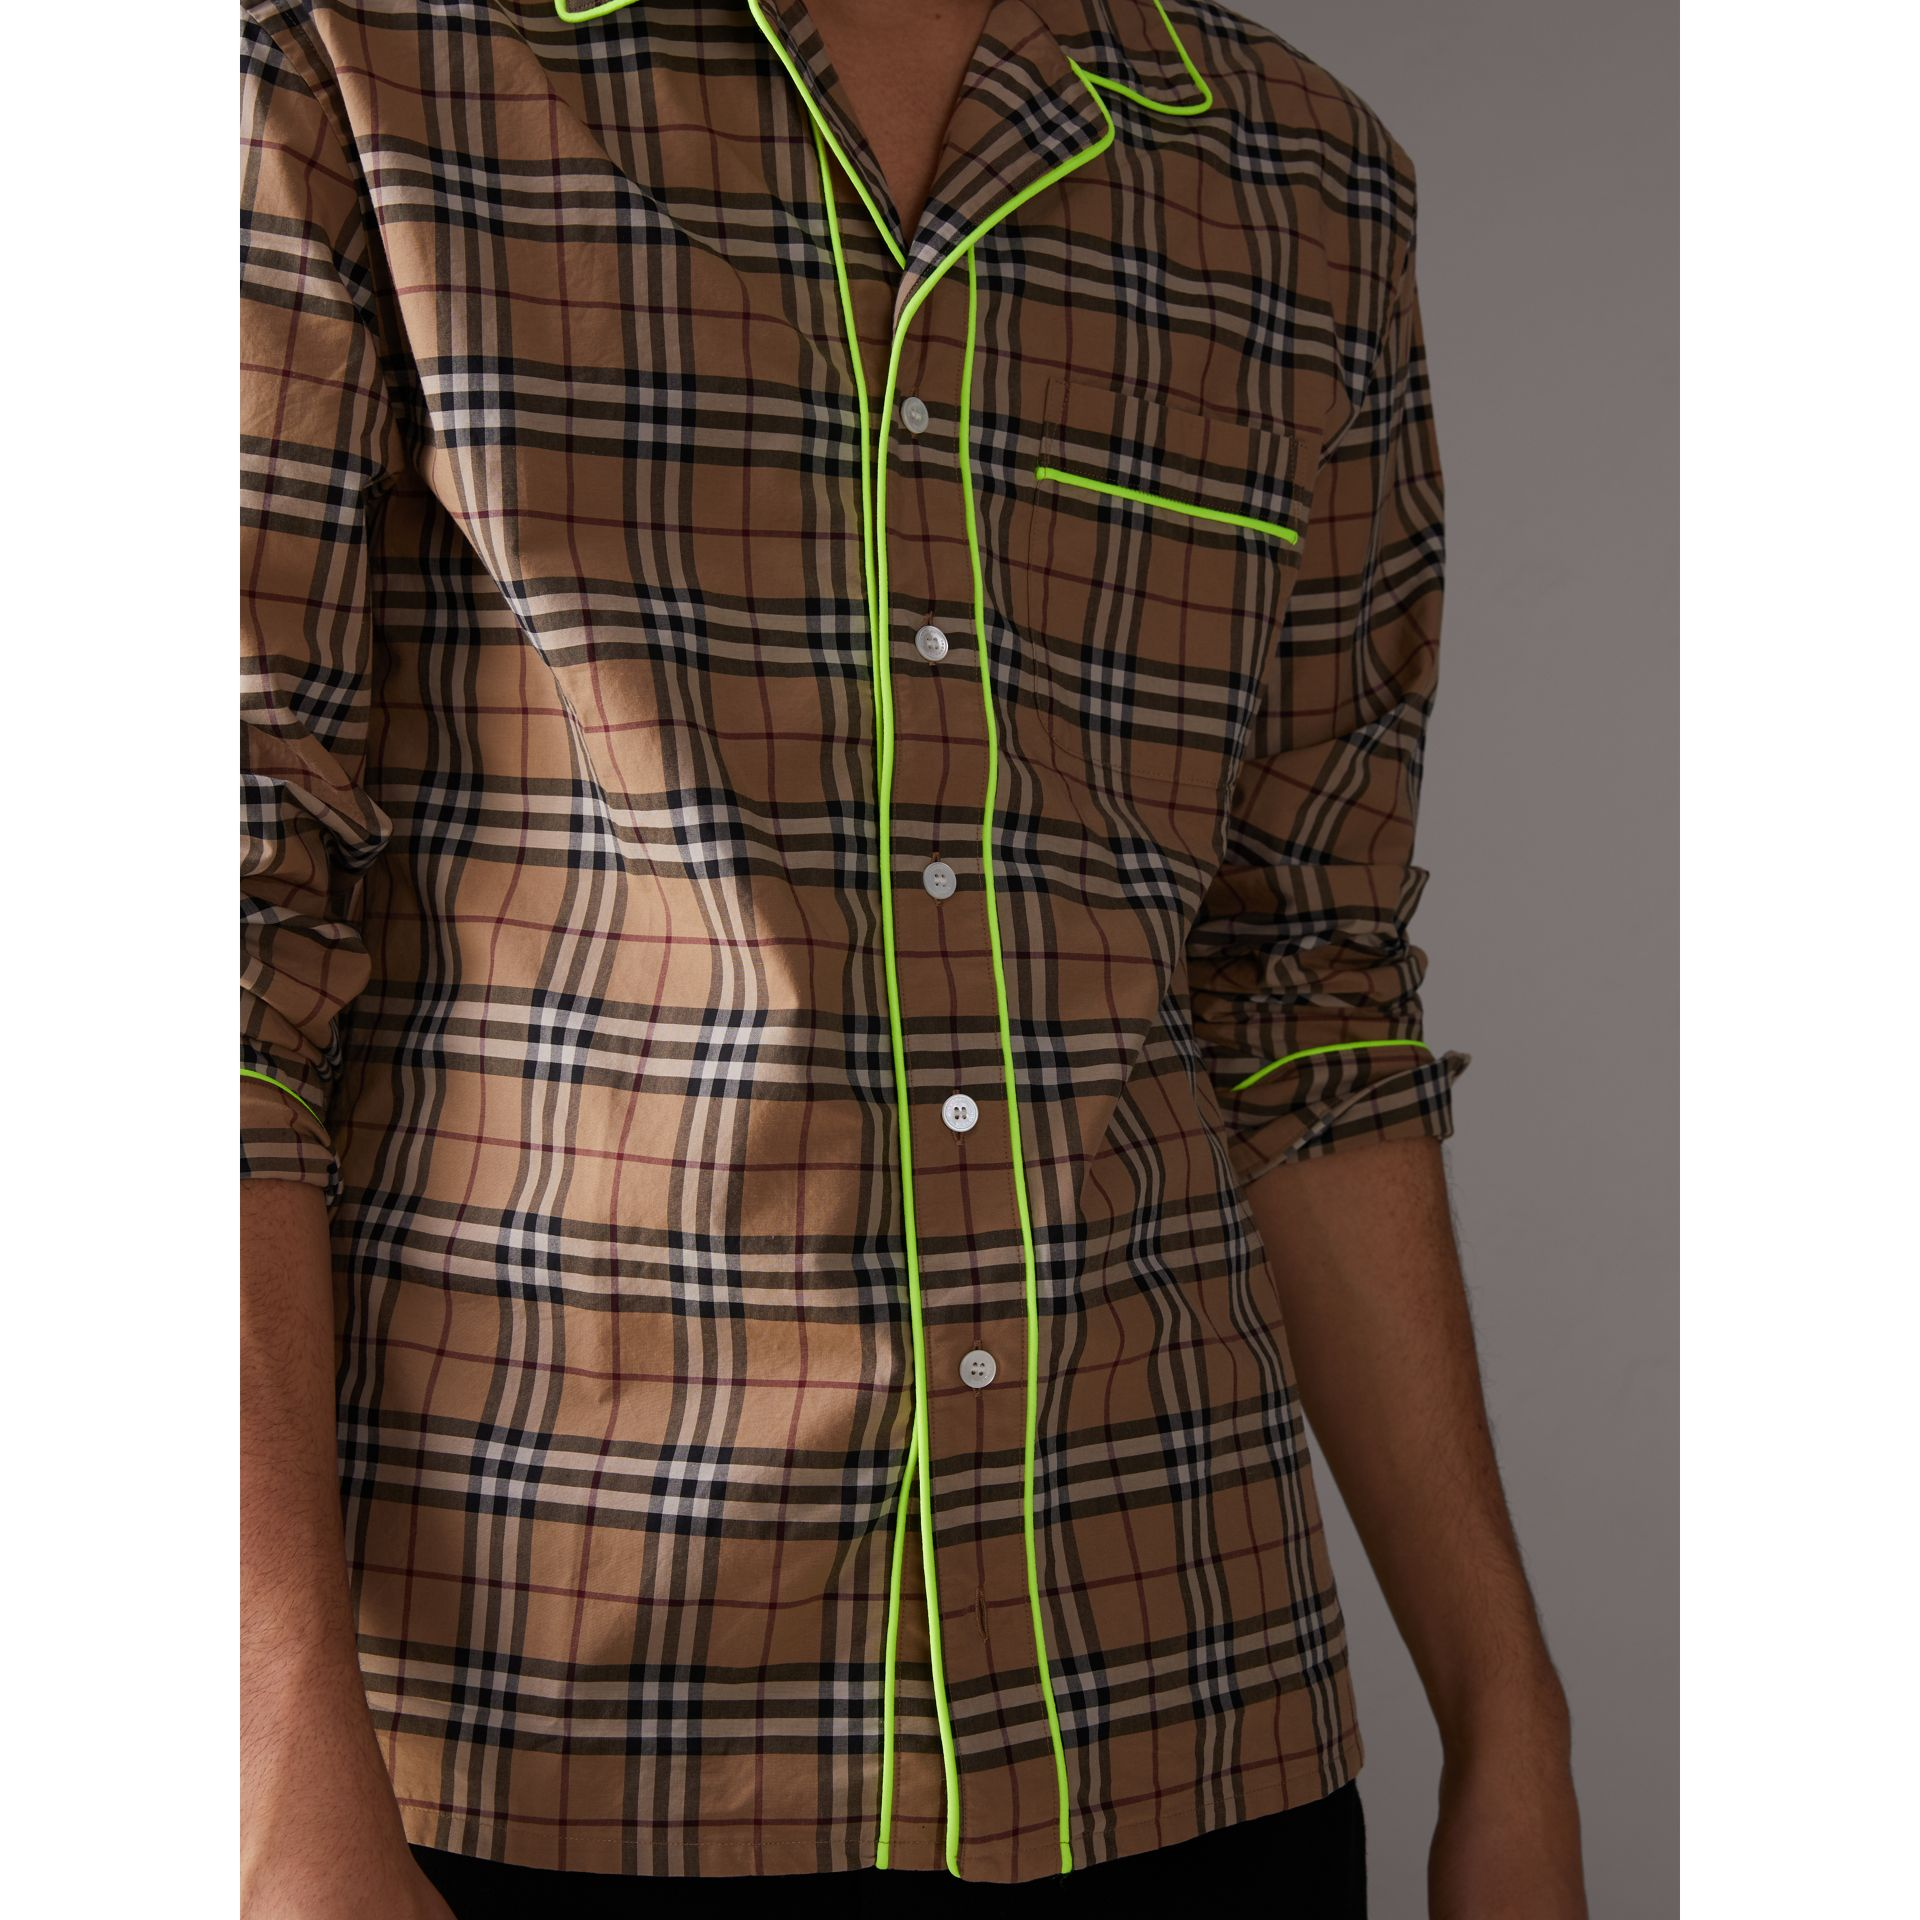 Contrast Piping Check Cotton Pyjama-style Shirt in Camel - Men | Burberry United States - gallery image 1